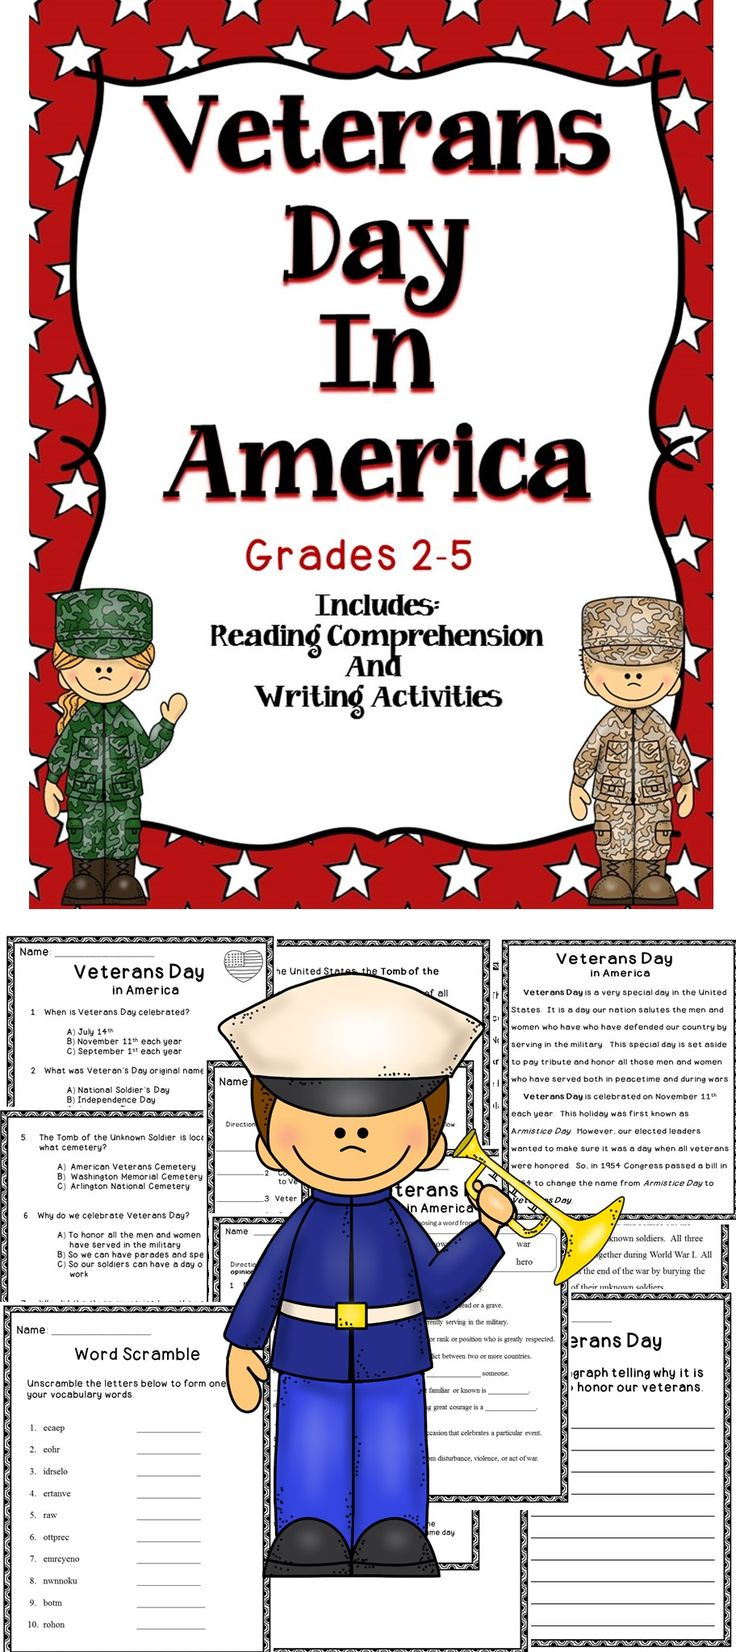 Veterans Day - This is a Veterans Day Activity Book. This book includes fun reading comprehension activities for the classroom. #tpt #veterans Day